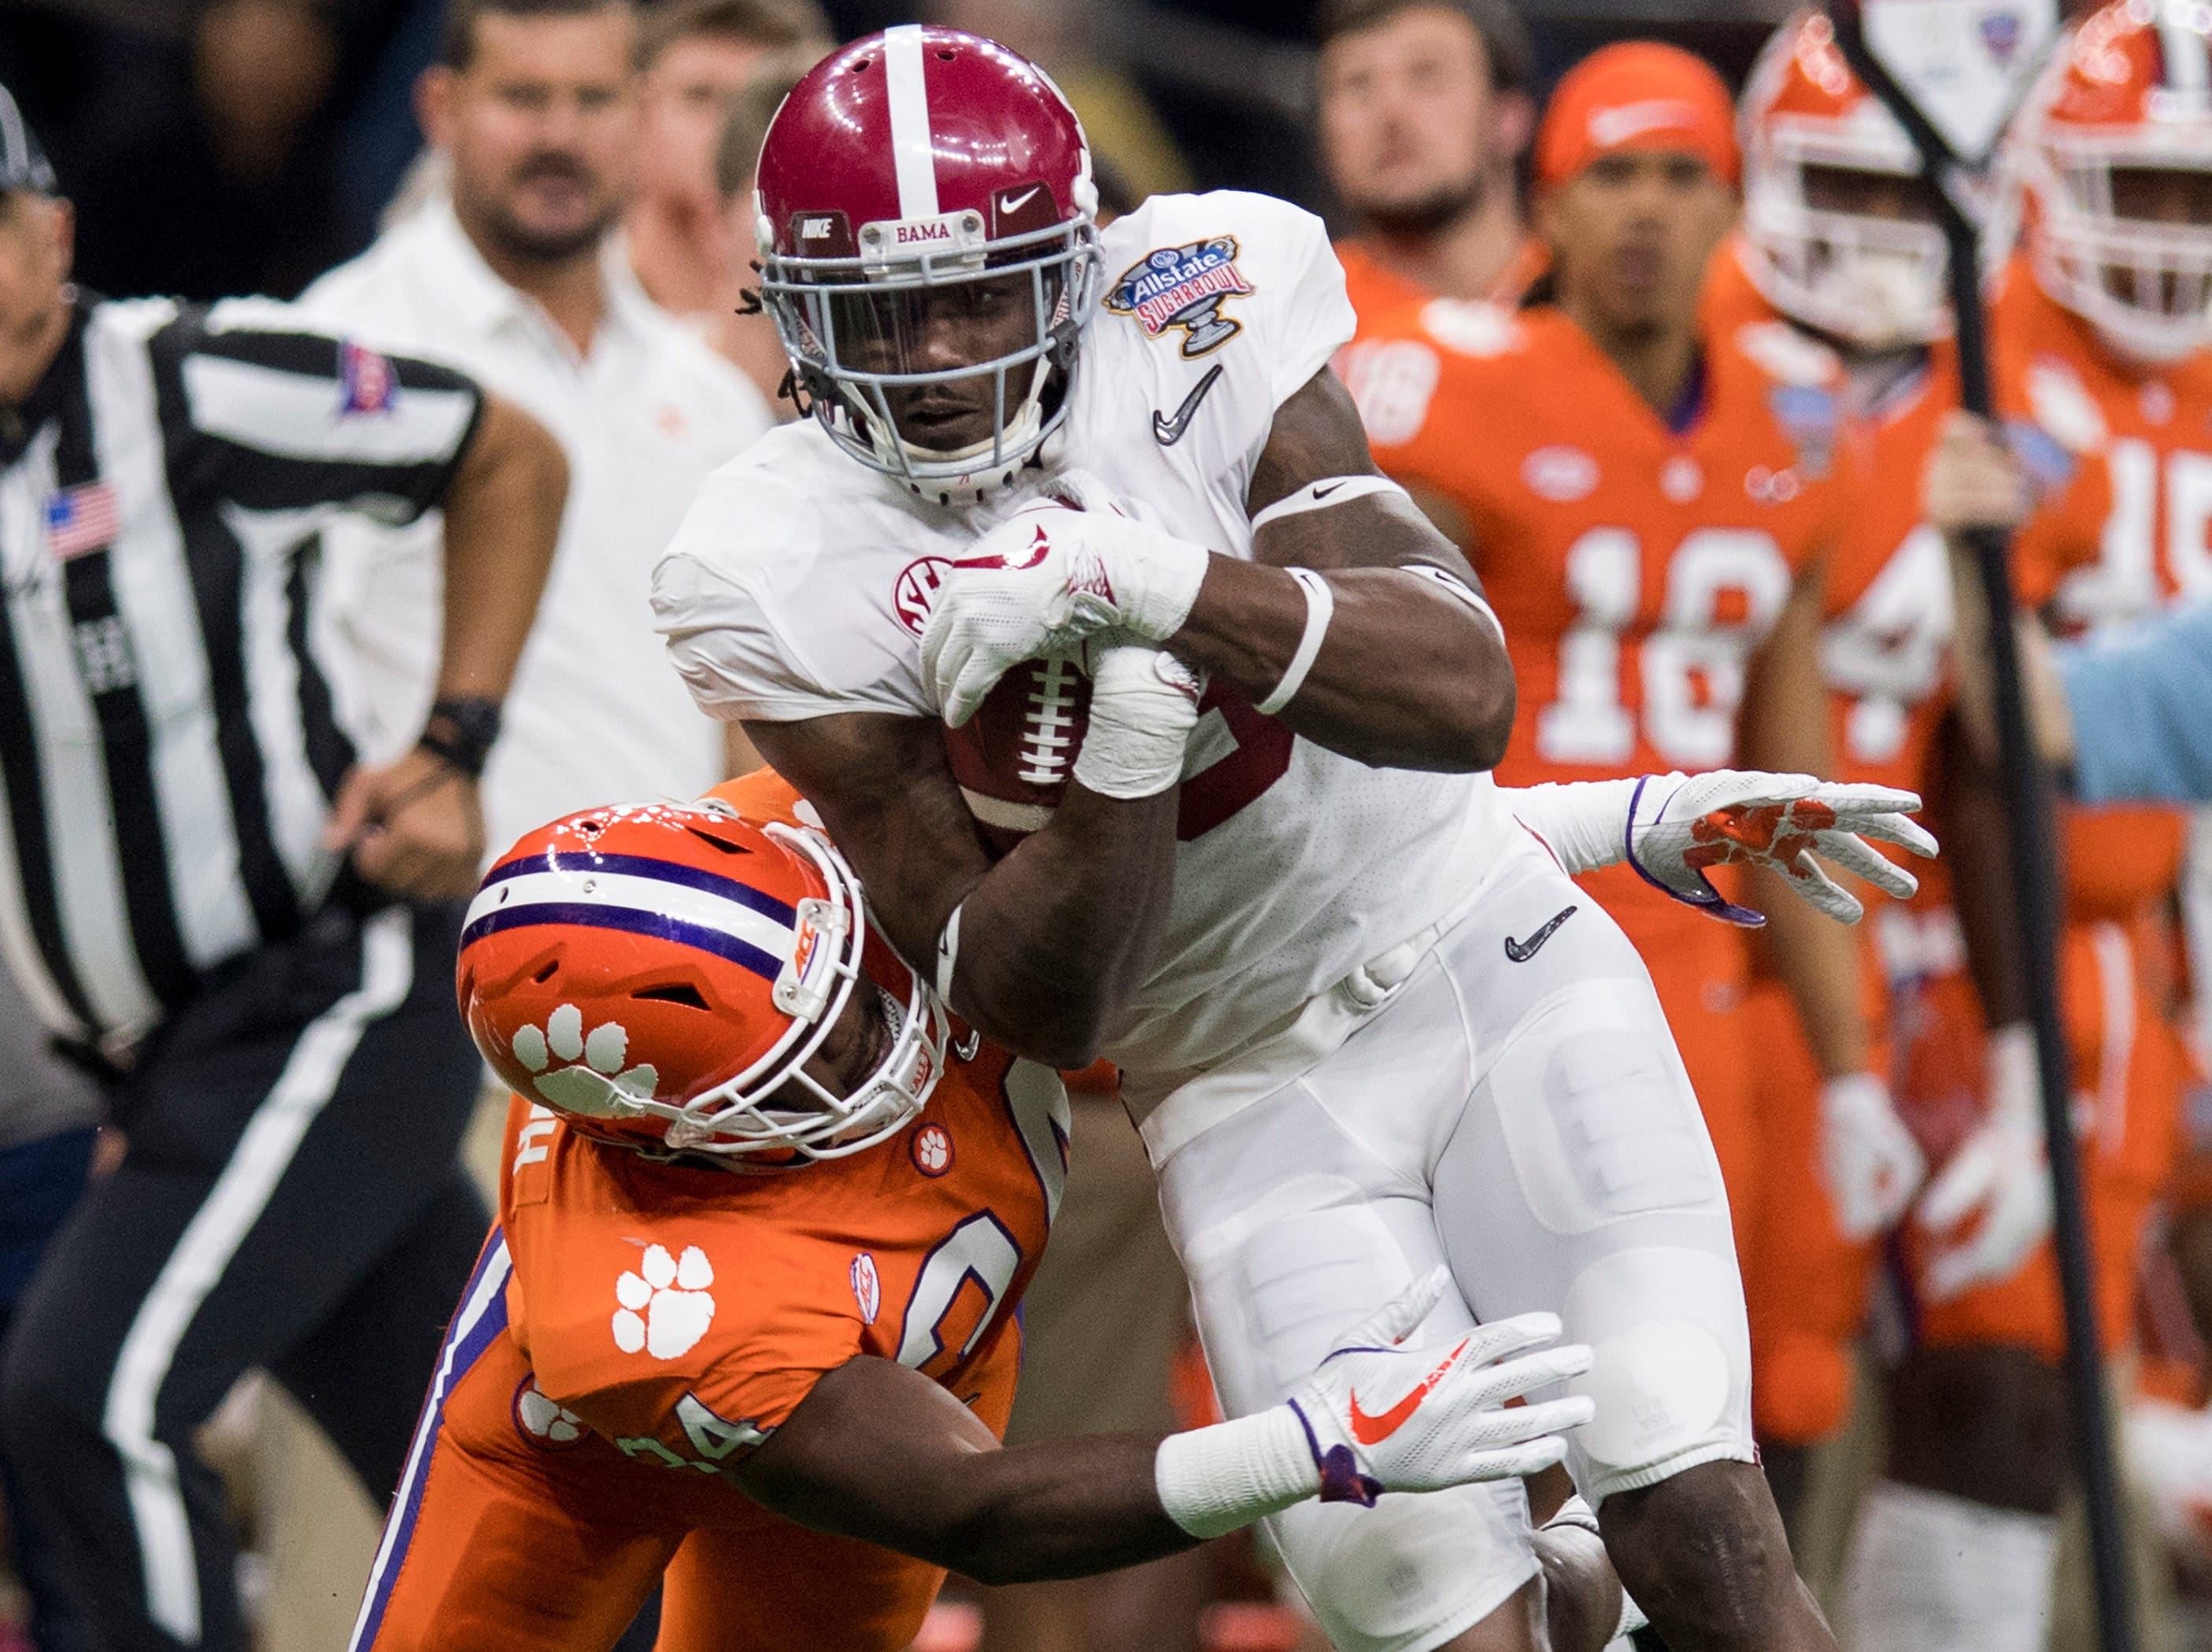 Alabama running back Bo Scarbrough (9) is defended by Clemson linebacker Kendall Joseph (34) in first half action in the Sugar Bowl at the Superdome in New Orleans, La. on Monday January 1, 2018.